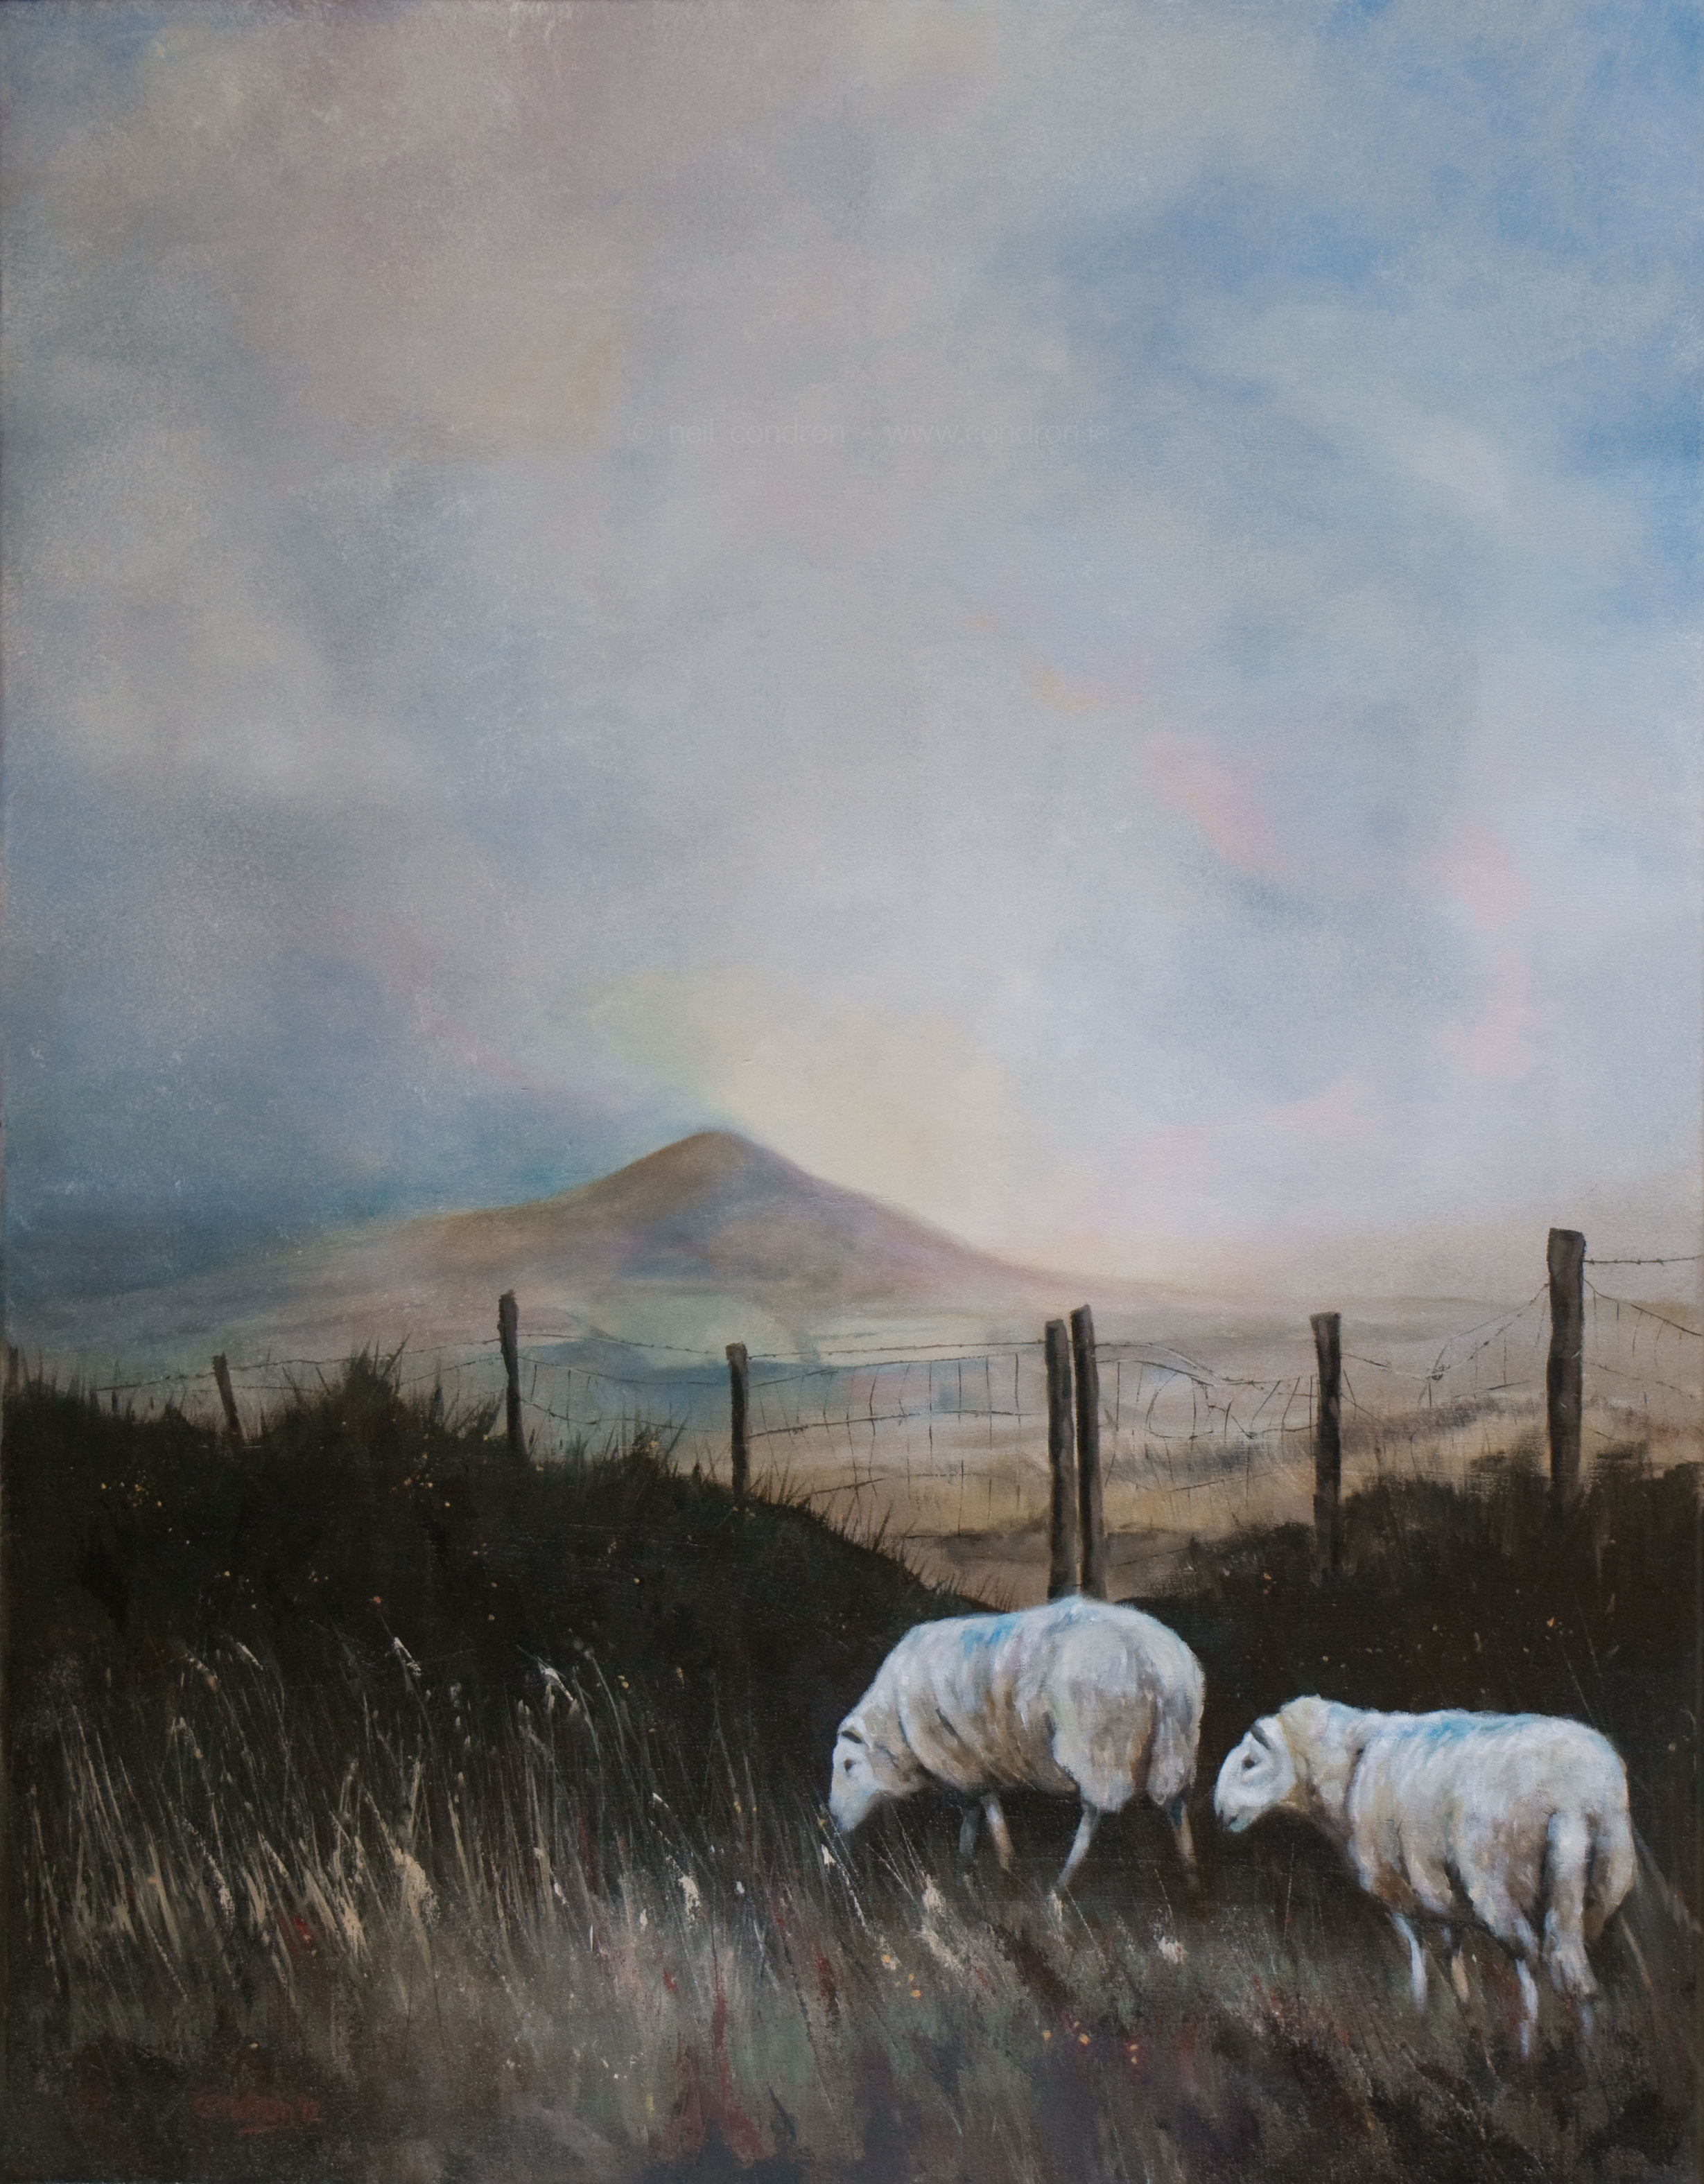 'Two Sheep and the Sugarloaf' by Neil Condron